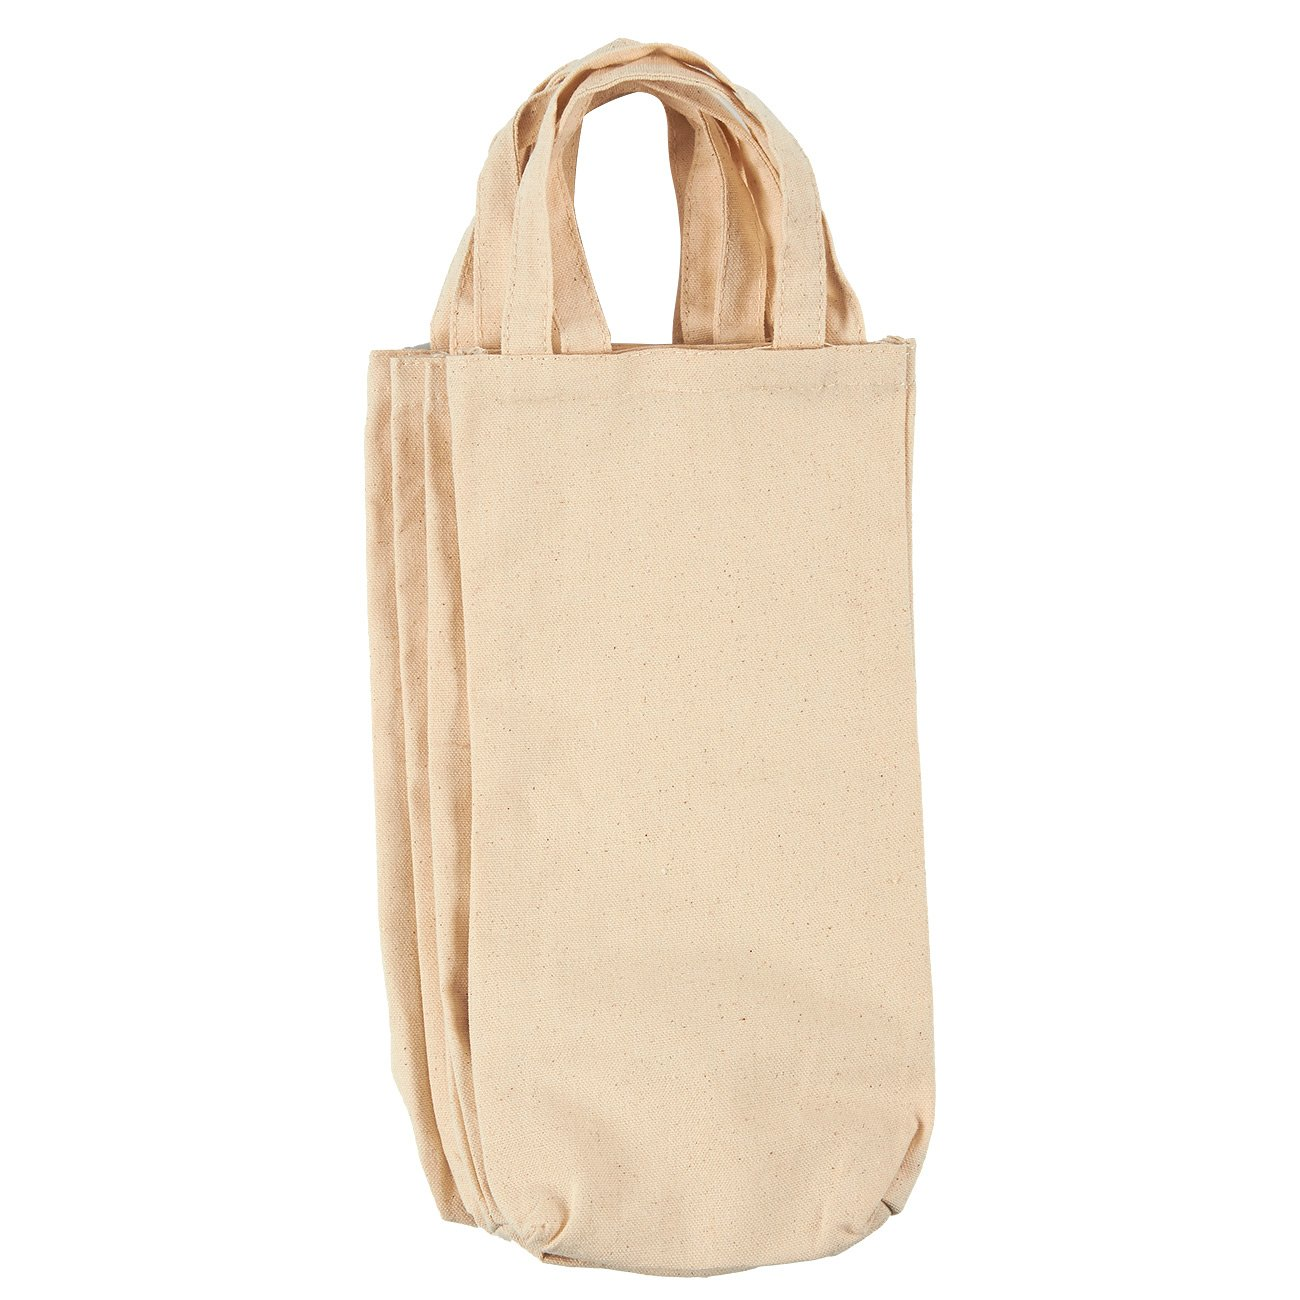 Wine Tote Bags - 4-Pack Wine Carrying Bag Set, Ideal Bottle Gift Bags, Cotton Canvas Travel Storage Bags, Picnic Wine Accessories, Off-White - 6.5 x 13 x 2.7 inches